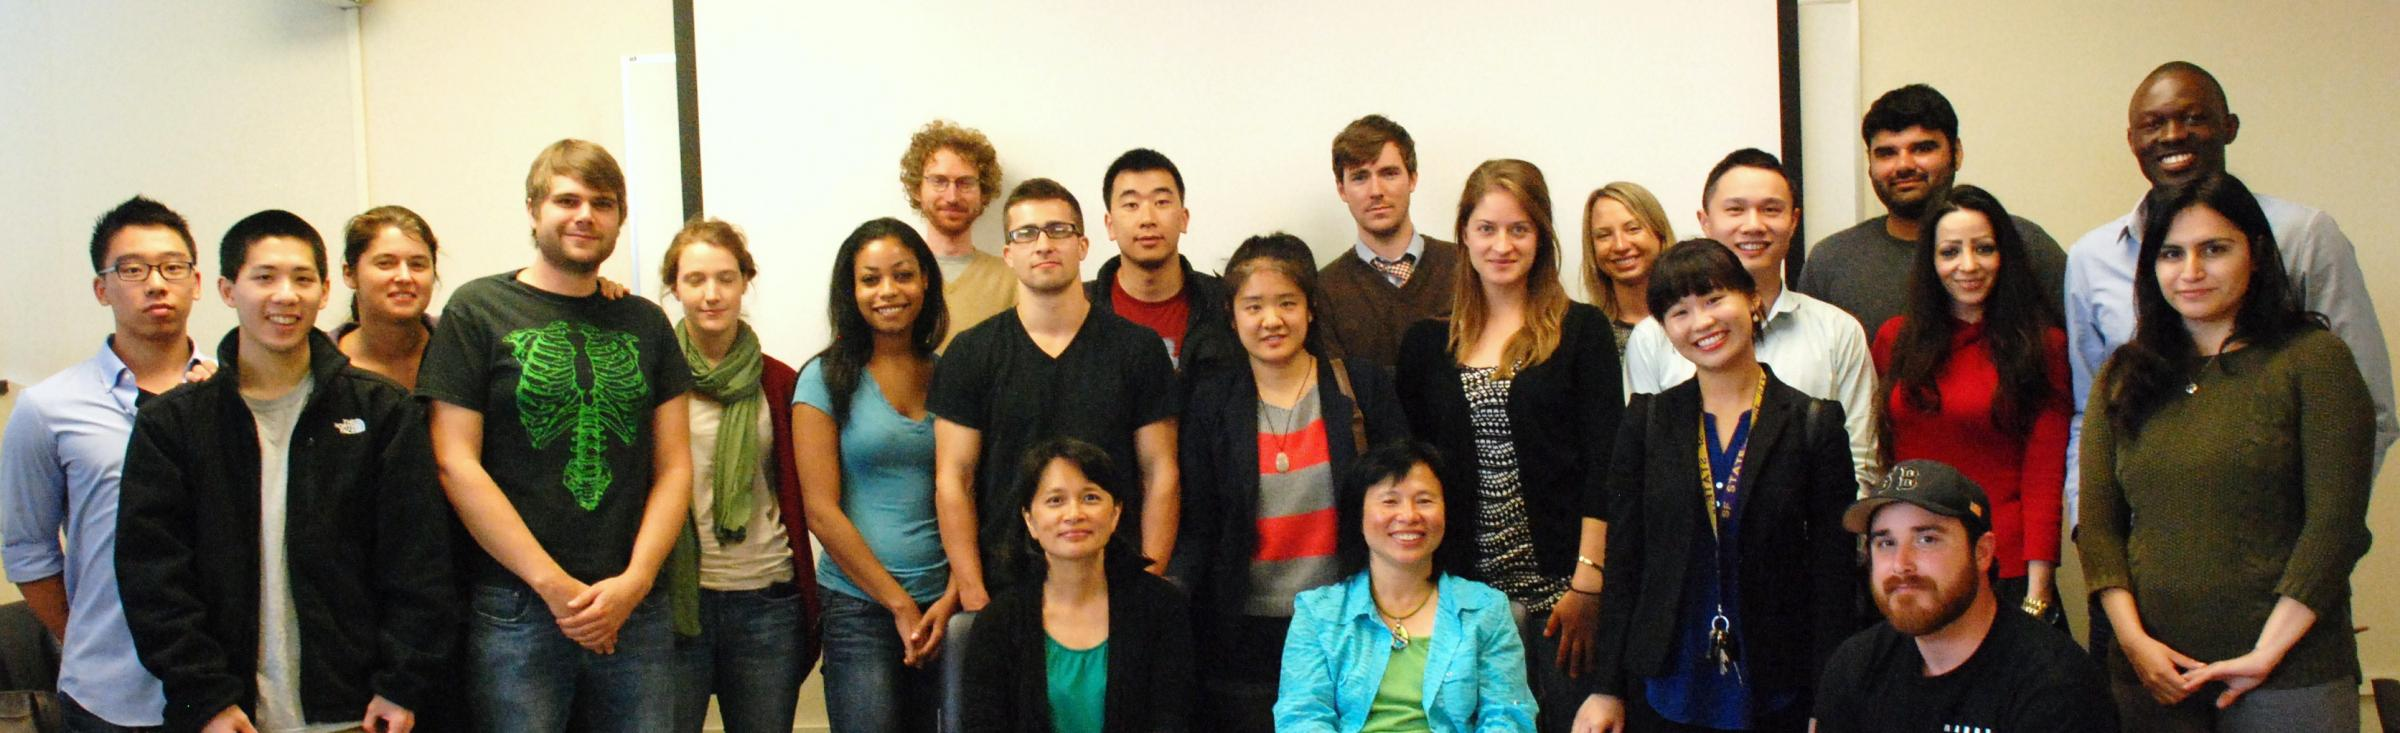 Cohort 5 Class students group photo during the orientation meeting in August 2014